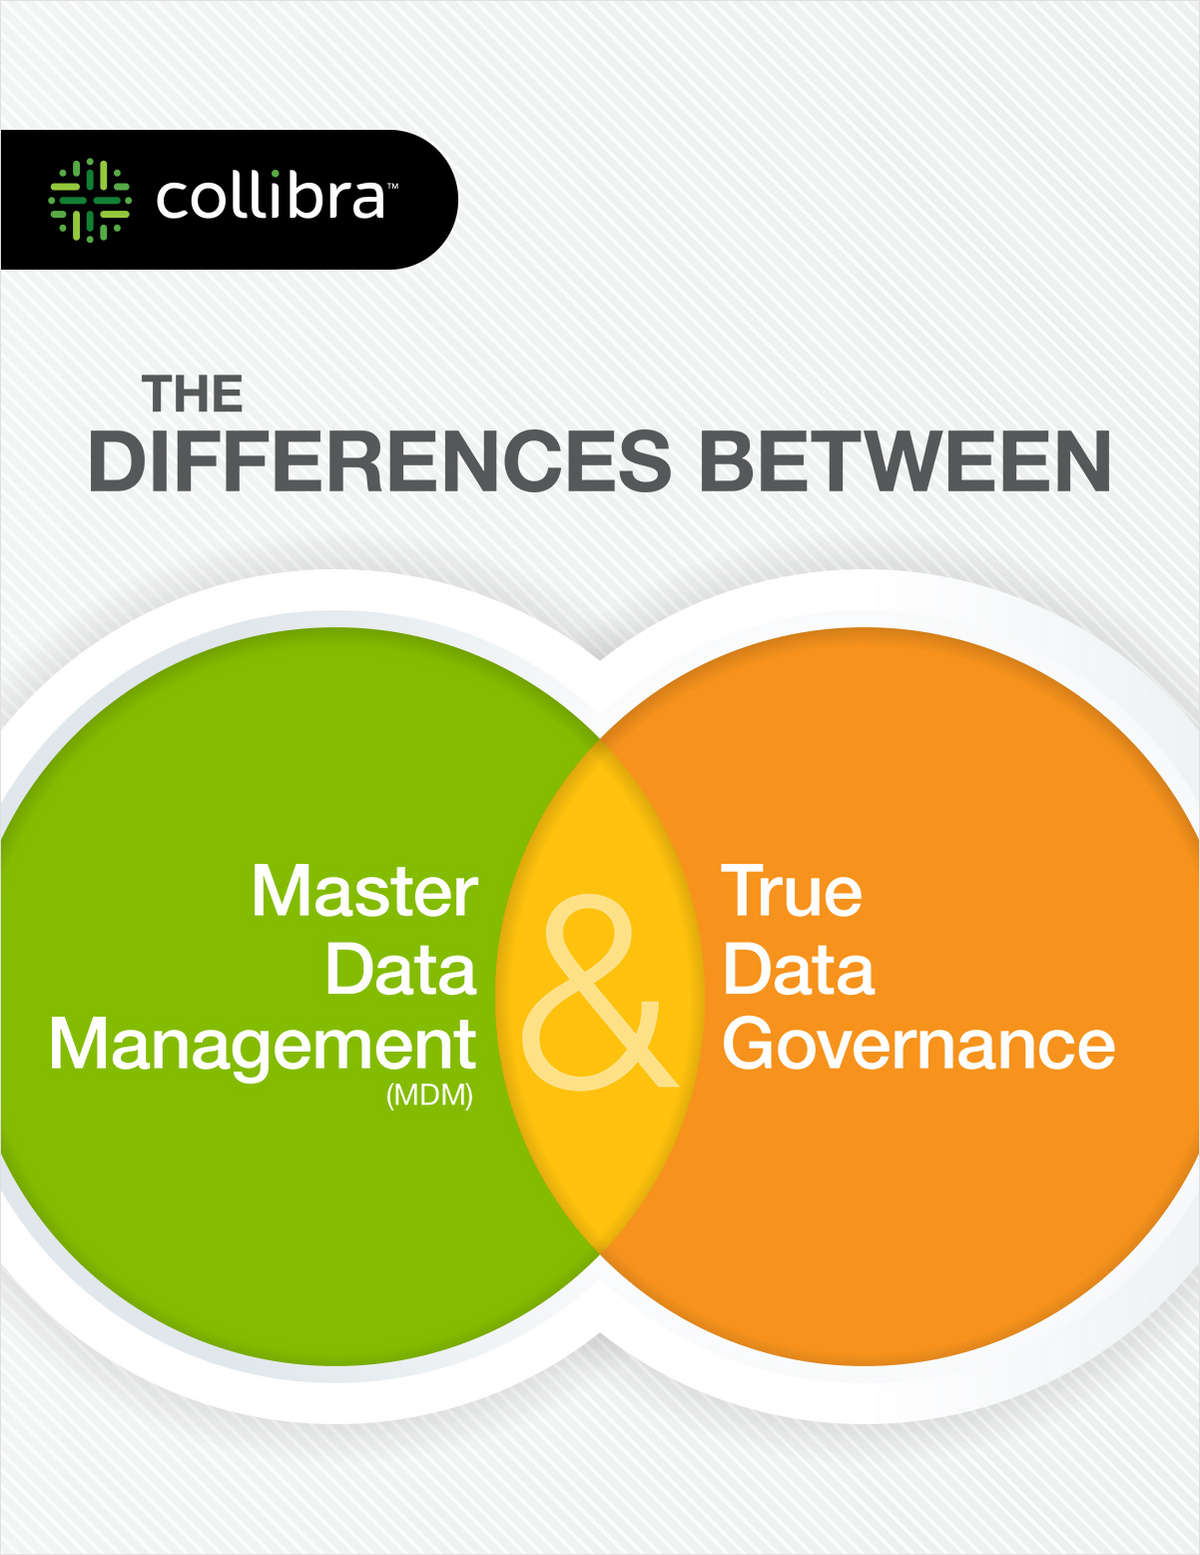 The Differences Between MDM & True Data Governance